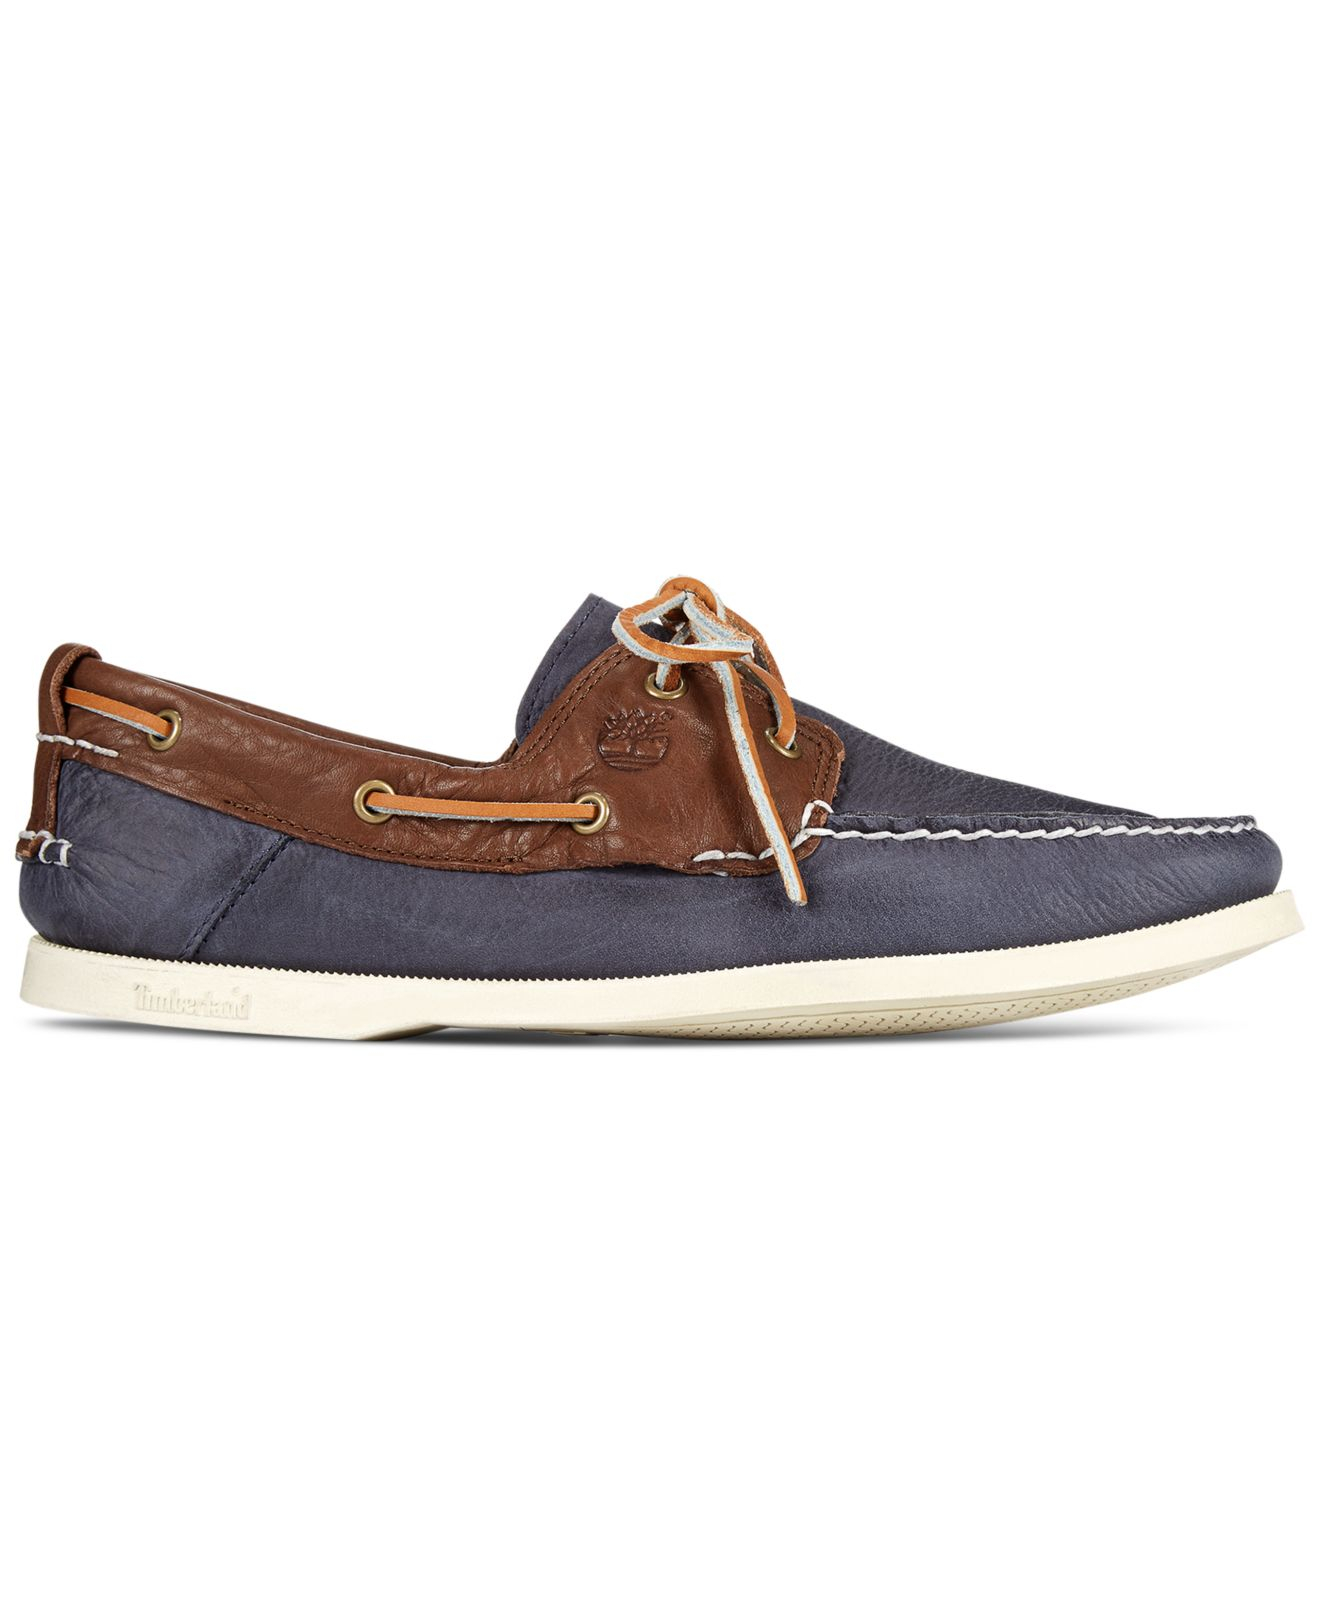 c2797349c6dba Pour Bateau Bleu Heritage Lyst Timberland Homme Earthkeepers Chaussures  qwgv146